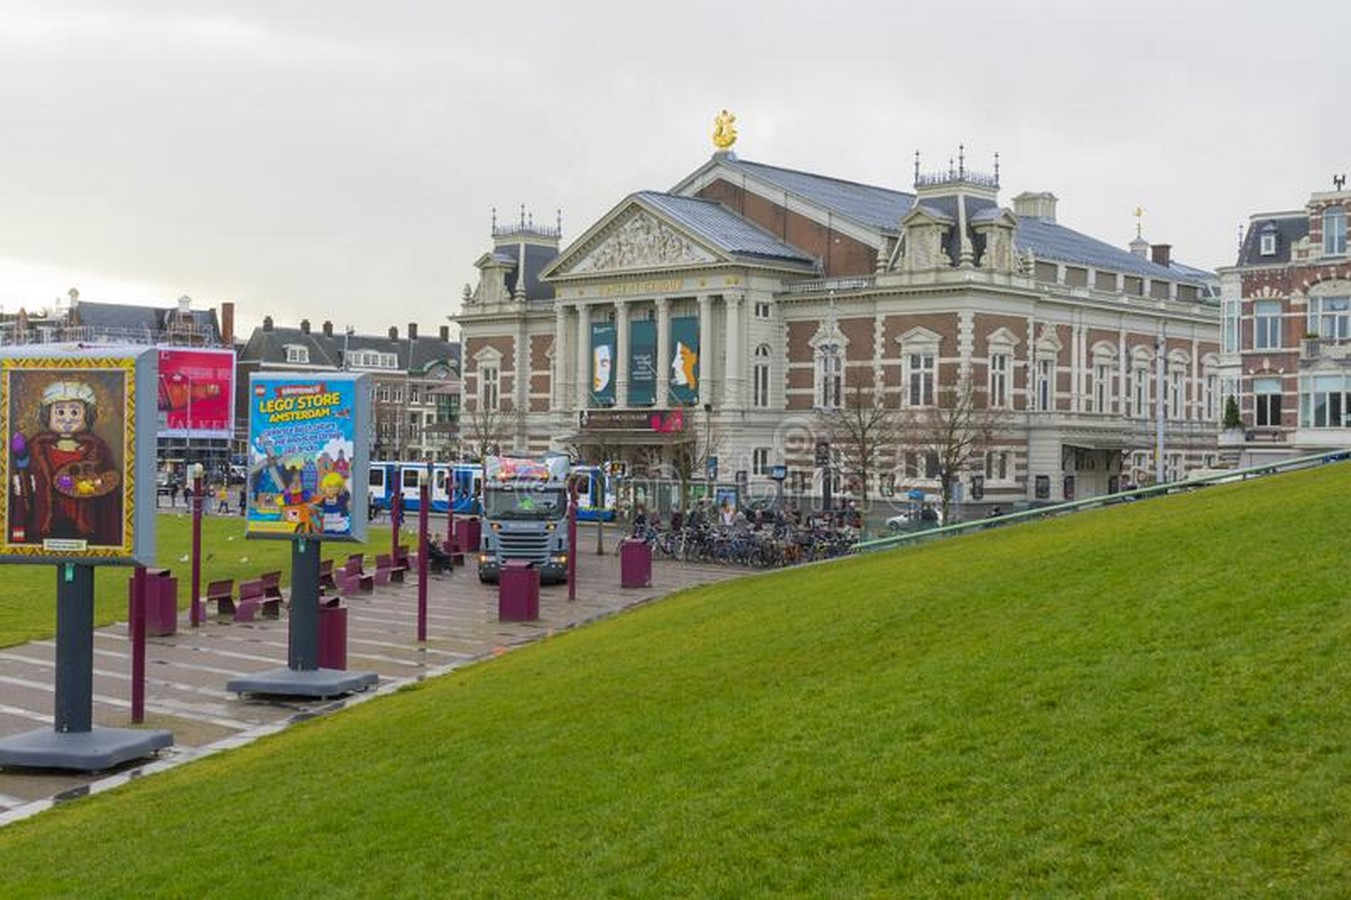 Concertgebouw in Amsterdam, Netherlands Applying acoustics without science - Sheet6